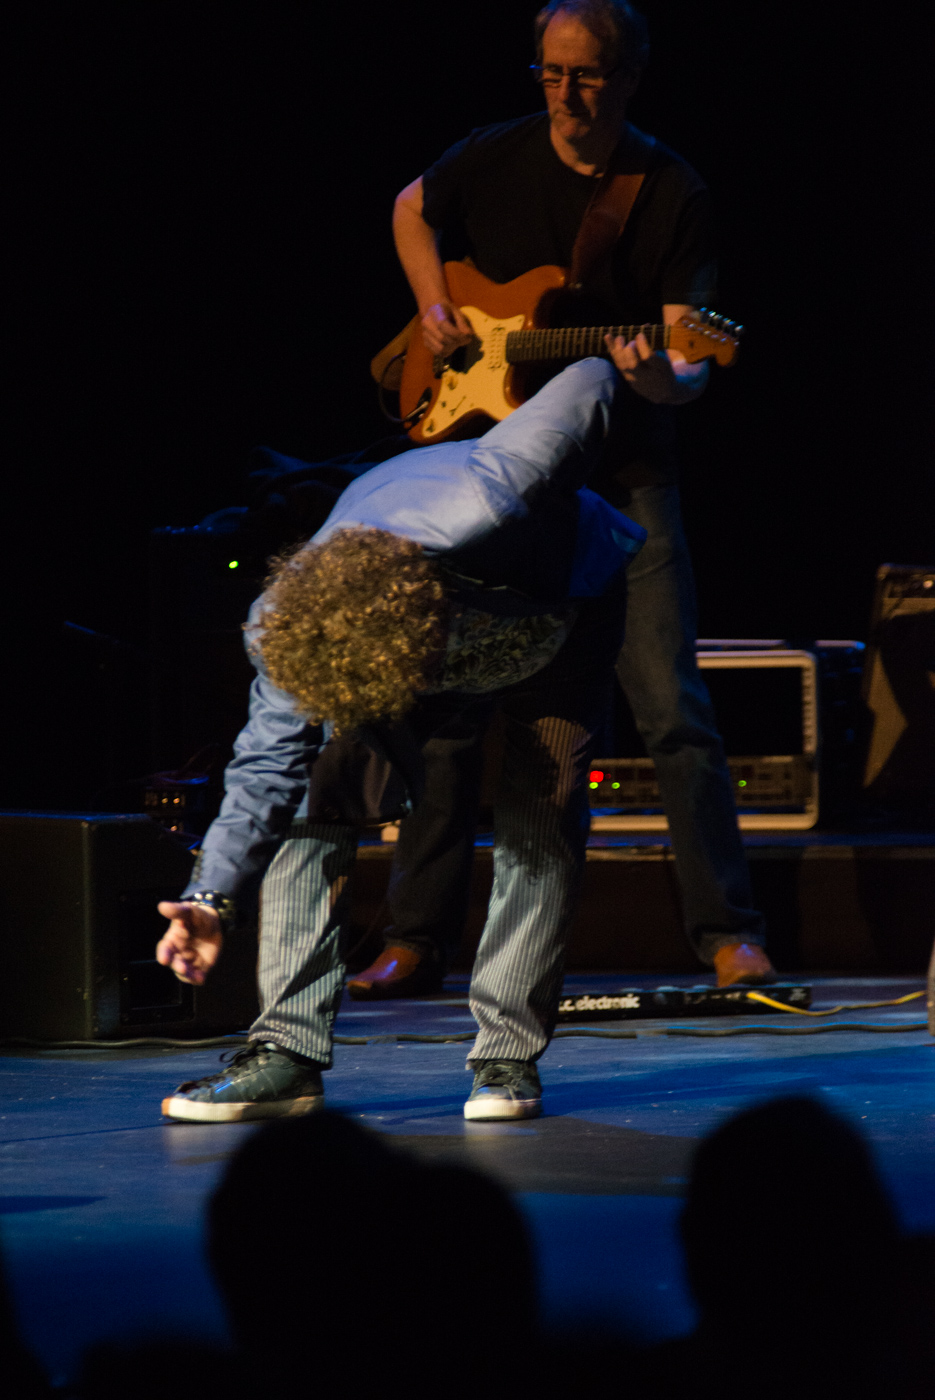 Leo Sayer at Bord Gais Energy Theatre by Sean Smyth (16-10-15) (38 of 129)